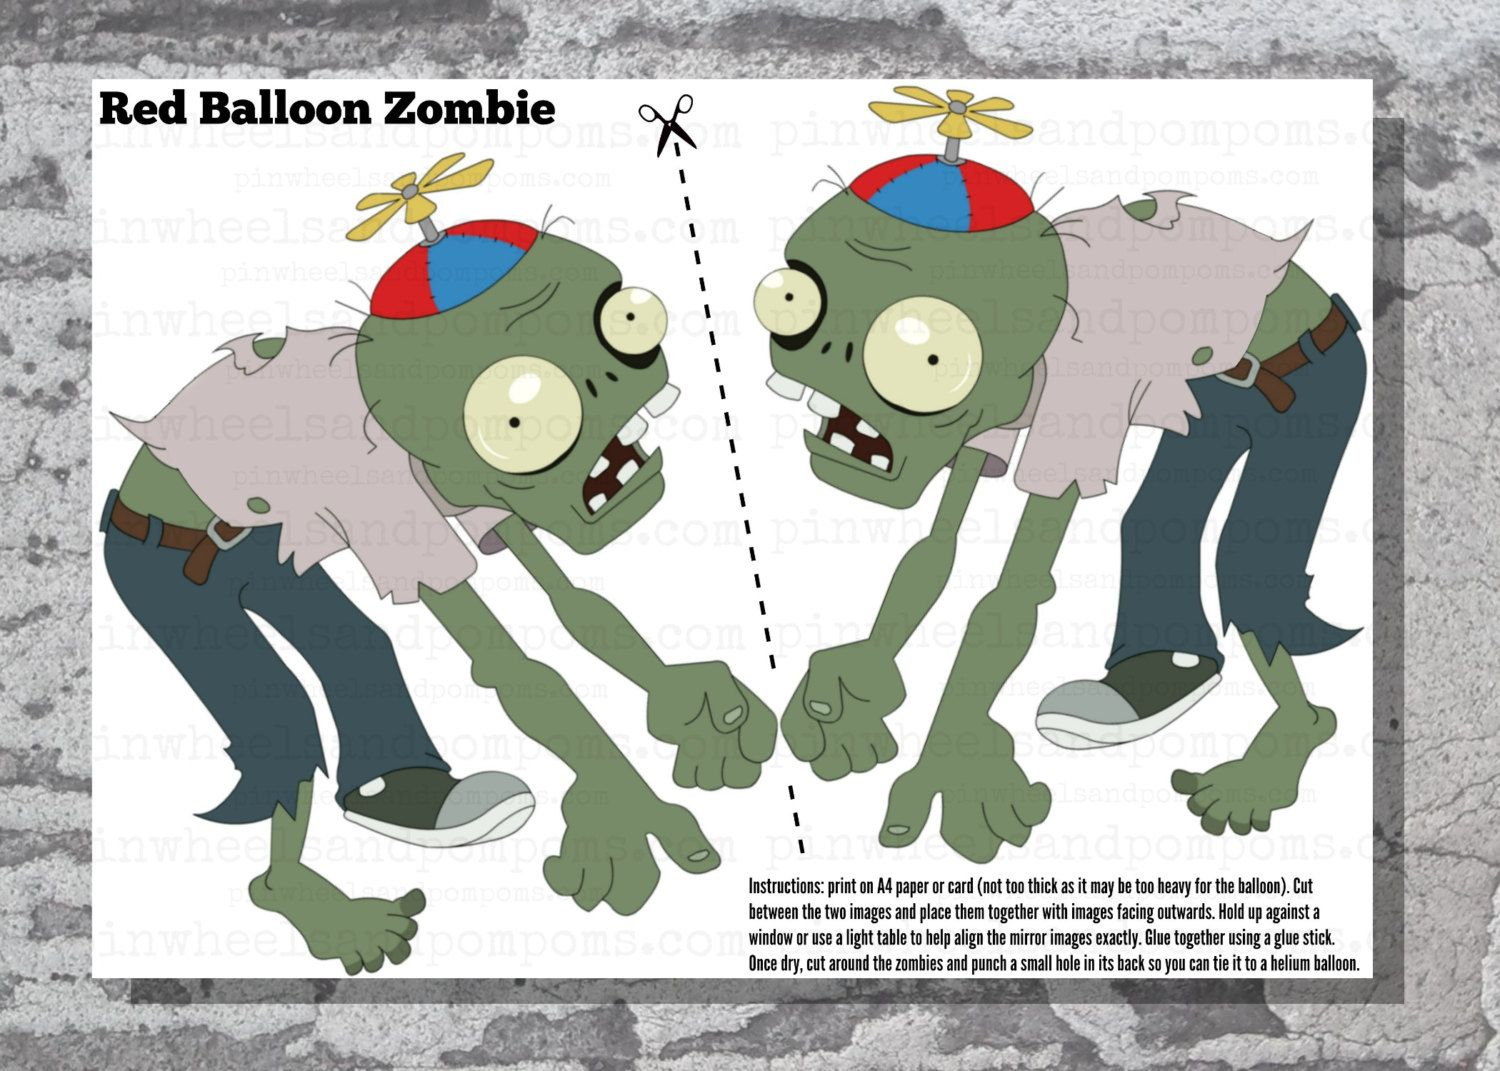 Floating balloon zombie bs fiesta tem tica zombie for Decoracion con globos plantas contra zombies